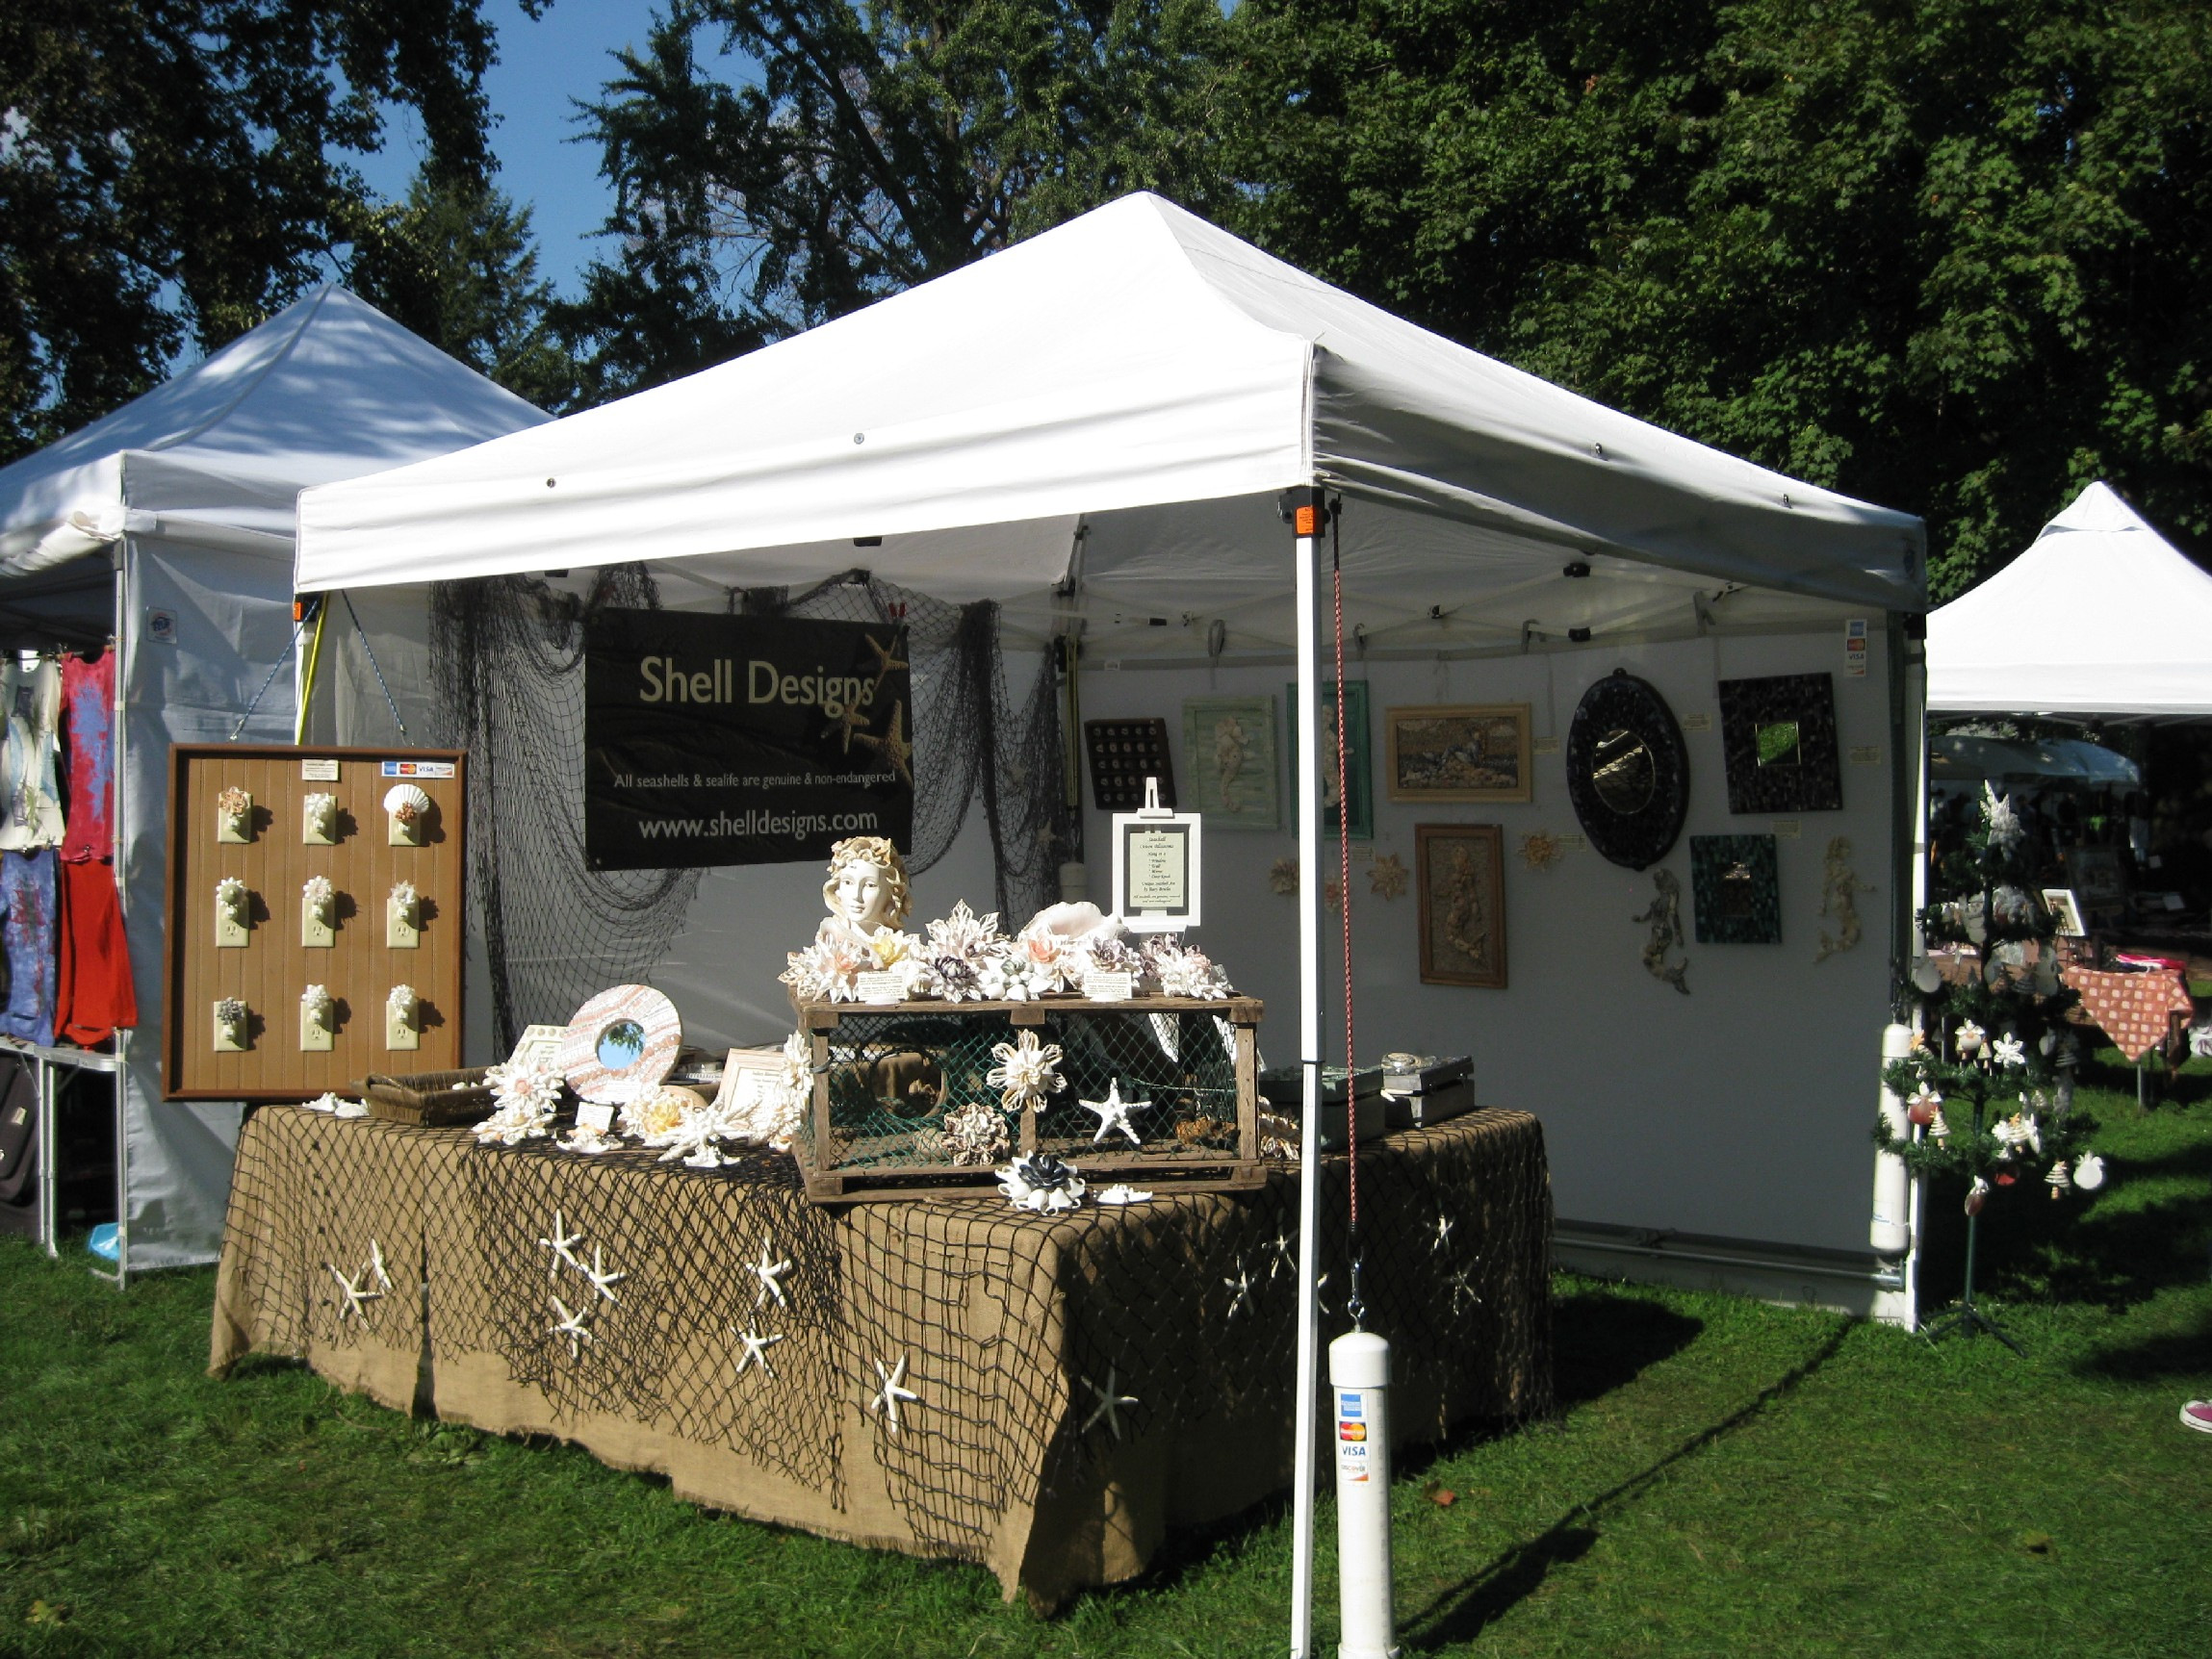 meet the artist and artisans milford ct